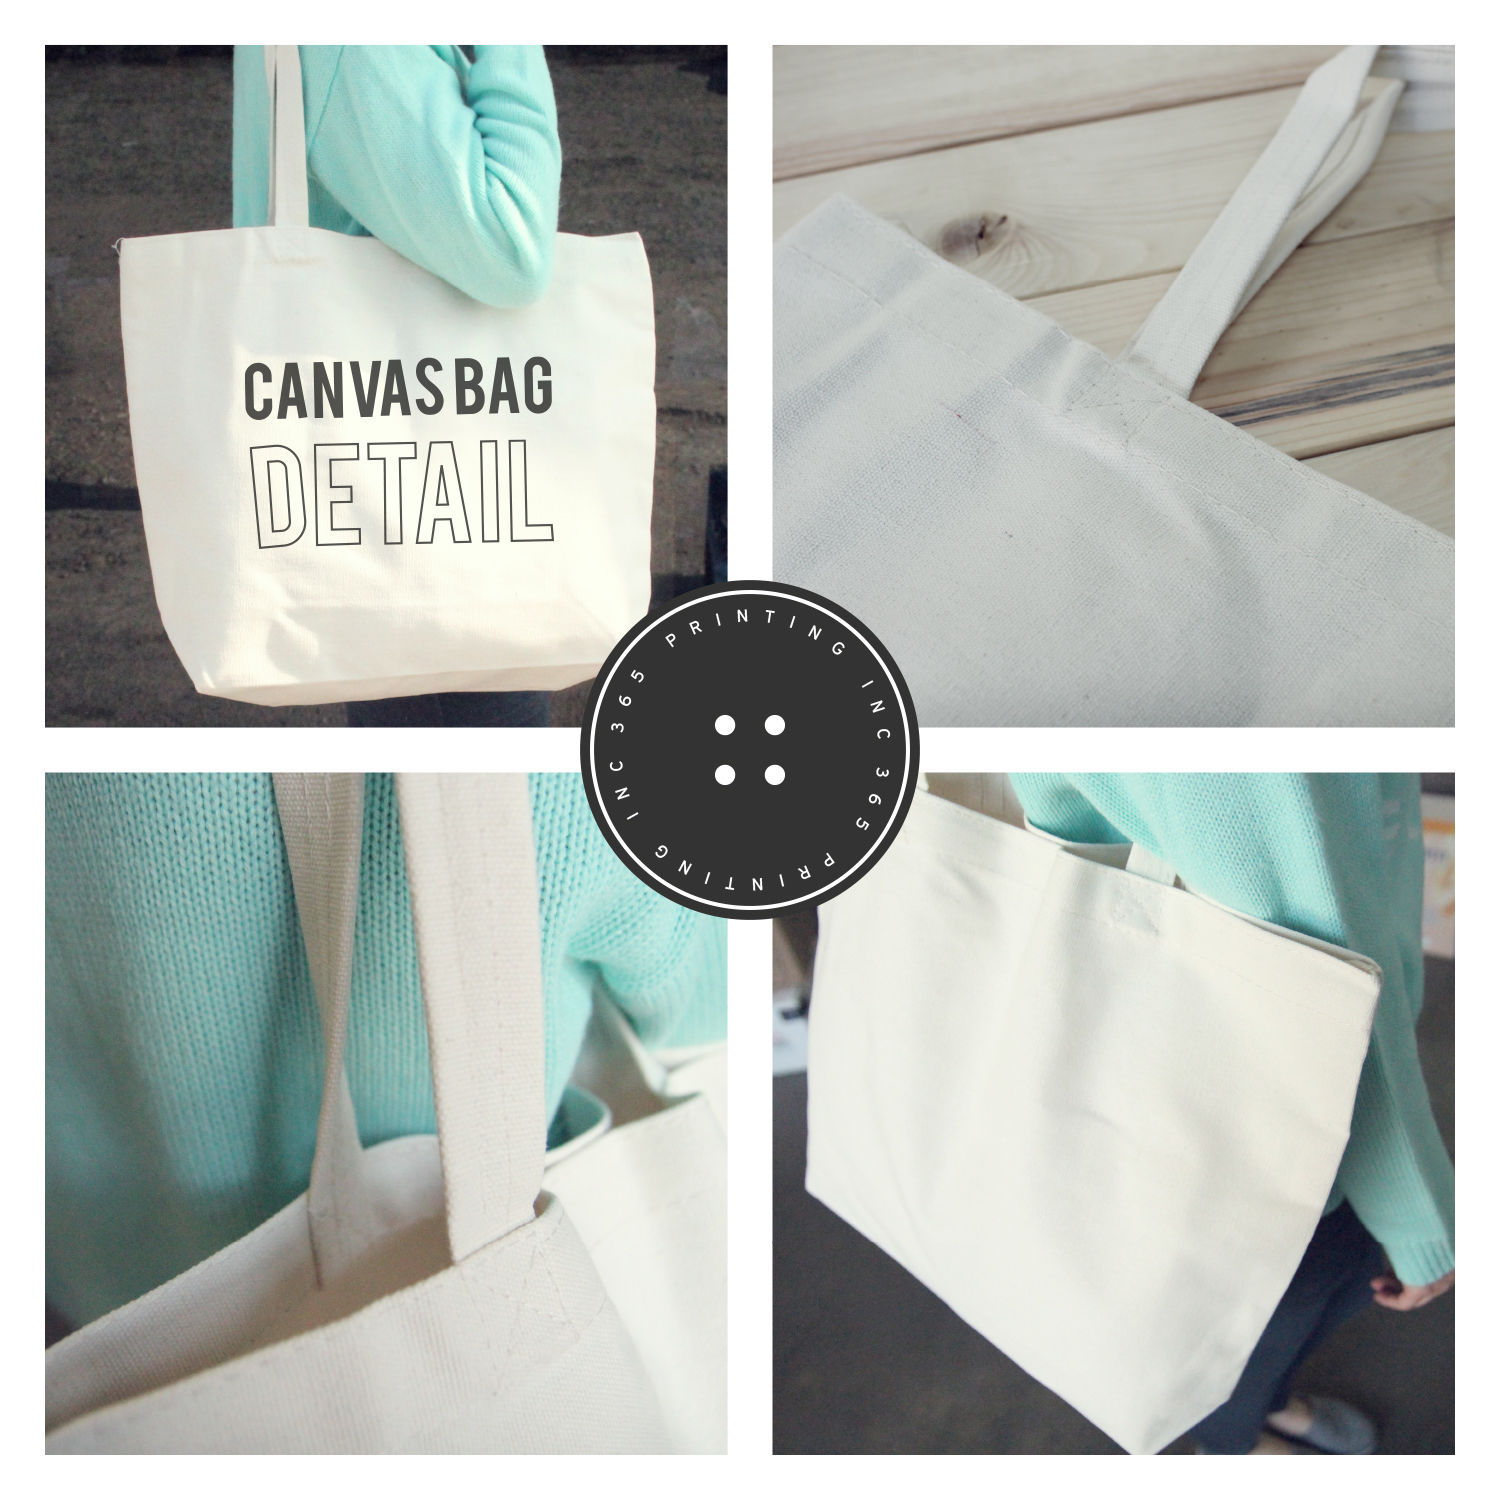 Short and Tall Best Friends Cotton Canvas Tote Bags - Eco Bags, Book Bags